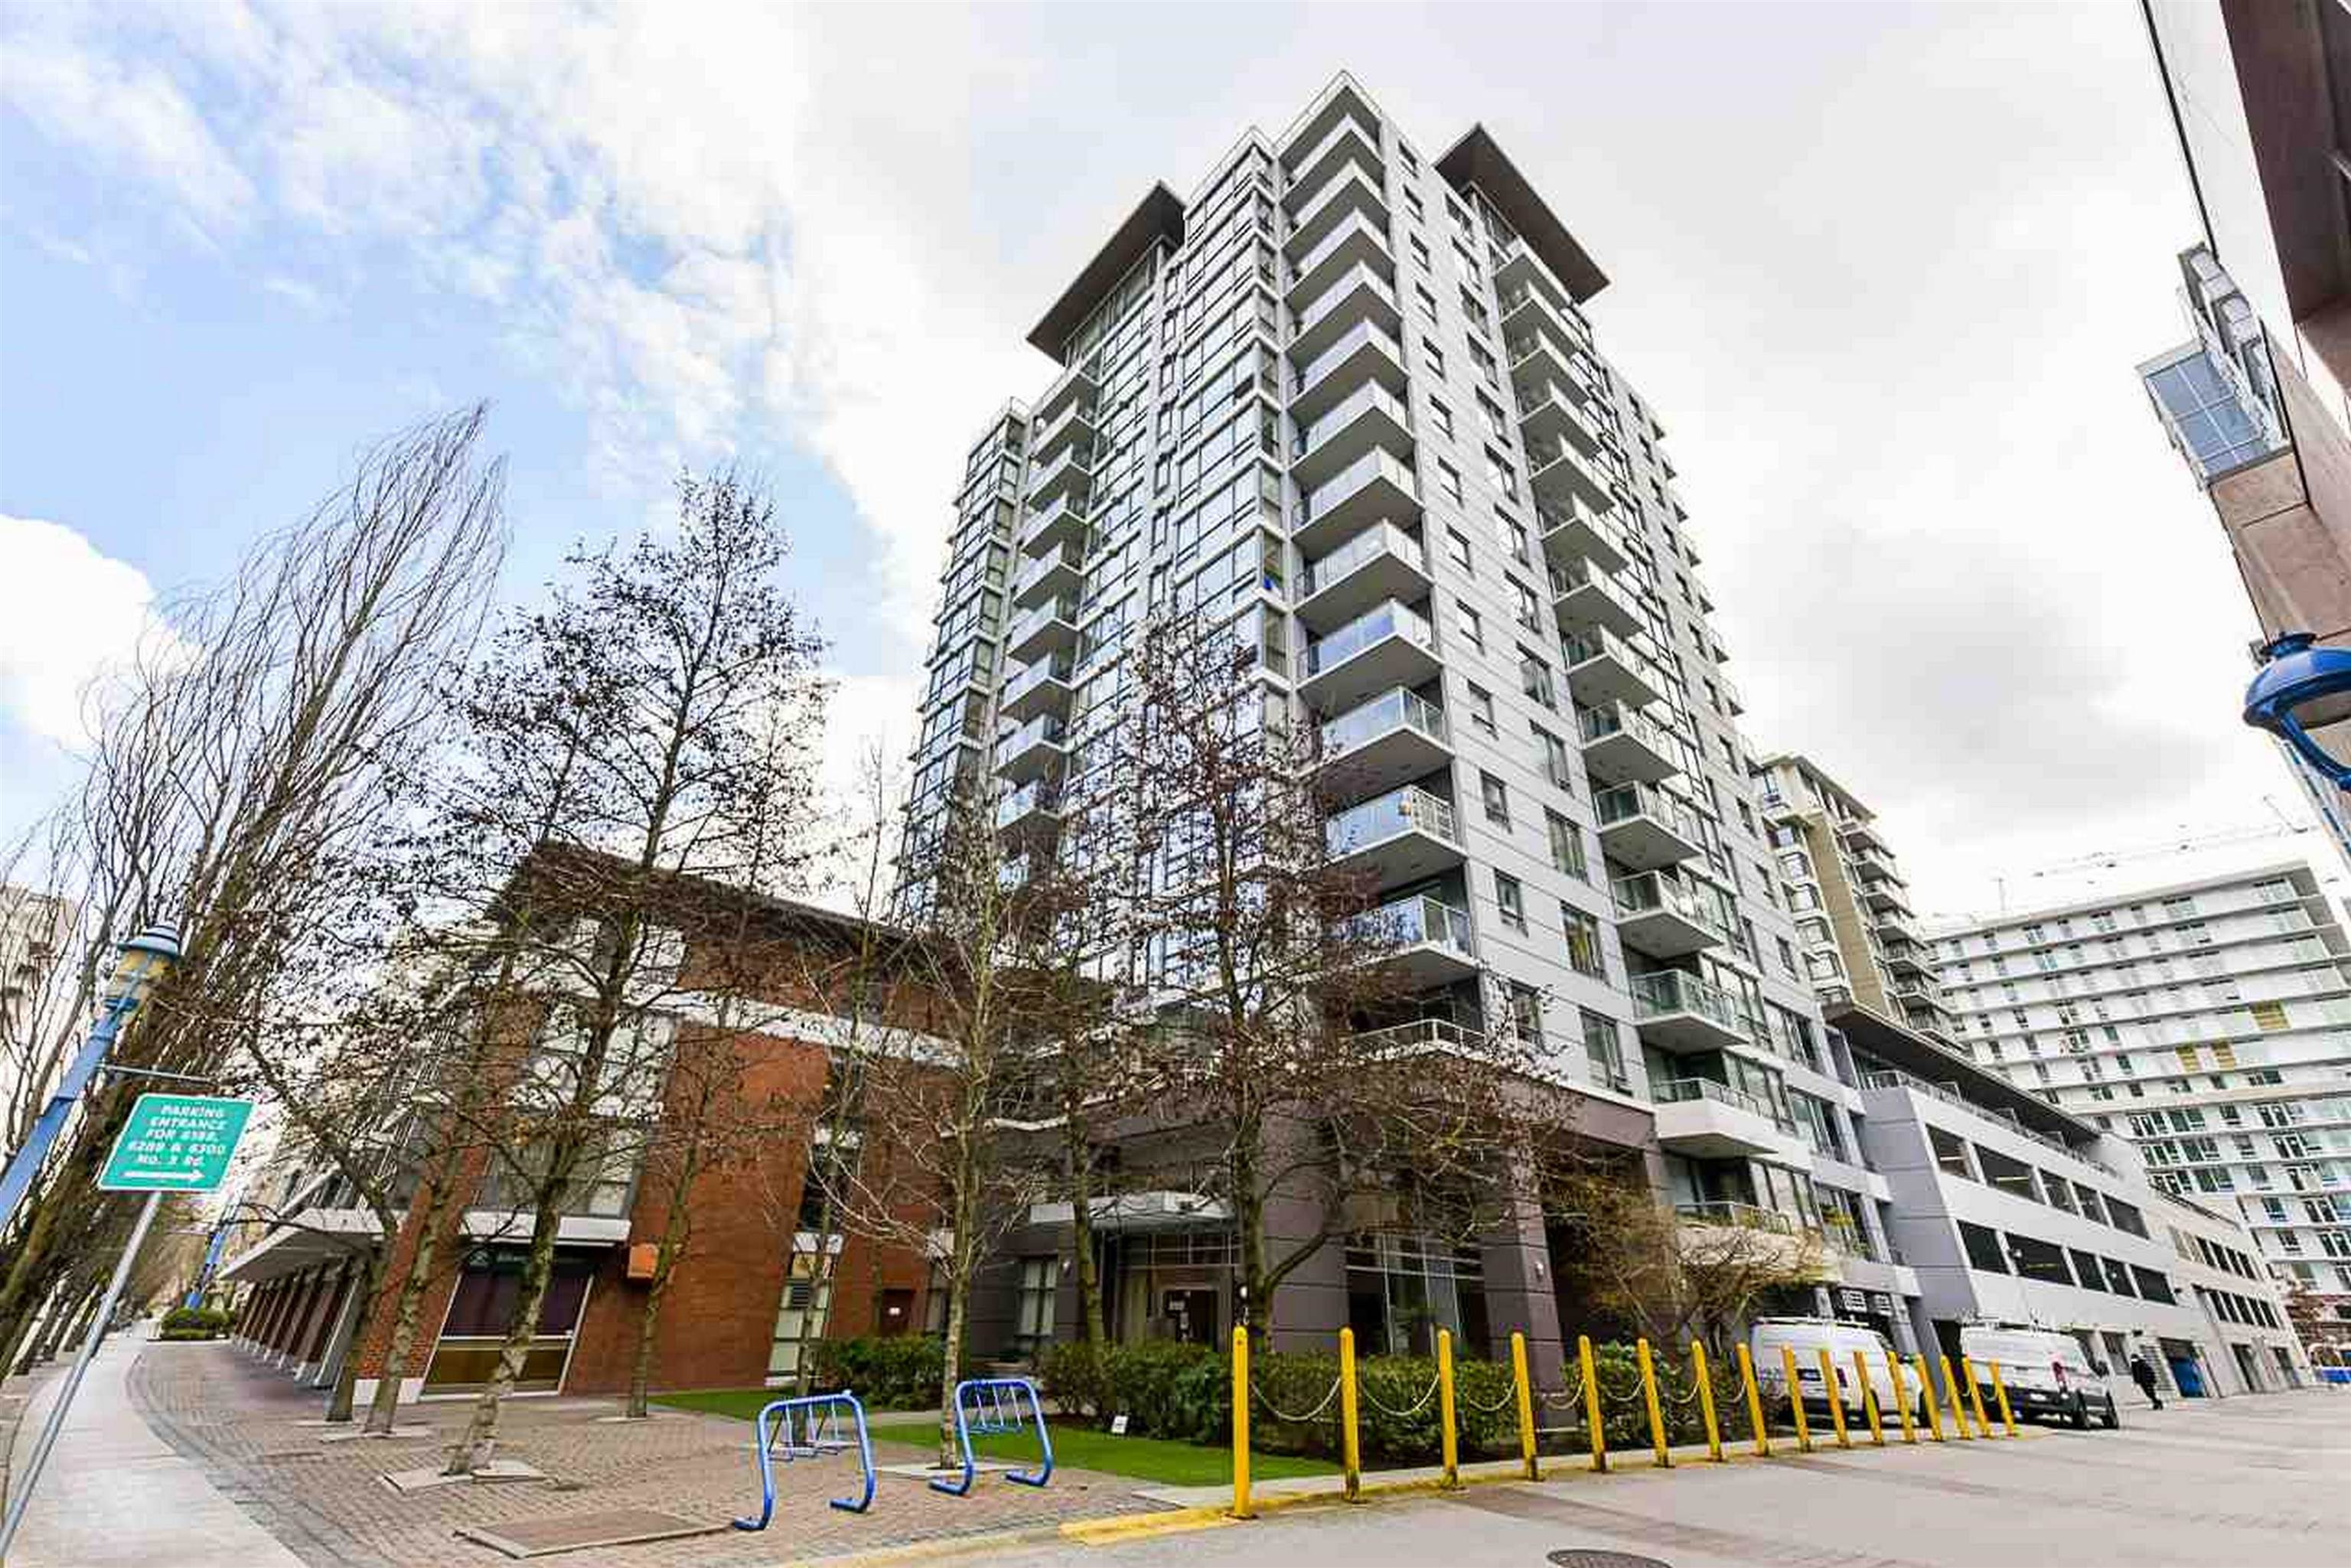 Welcome to Perla- a quality concrete building in the heart of Downtown Richmond. This rarely available quiet 1 BEDROOM AND DEN (could be used as 2nd bedroom) in the PRIME LOCATION-steps away from Canada Line, Richmond Center, banks, restaurants, grocery and shopping; 5 minutes drive to Minoru Center, Library, and Kwantlen University, 20 minutes to Downtown Vancouver and 10 minutes to YVR Airport. Featuring NEW PAINT, LIGHT FIXTURES, BLINDS; laminate floor & open kitchen concept. Functional layout with NO WASTED SPACE. INCL: 1 parking & 1 locker. Well managed complex with an on-site manager and proactive strata. Amenities features clubhouse, indoor swimming pool, sauna, steam, gym room and garden. OPEN HOUSE 9/25 AND 9/26 BETWEEN 2-4PM OR CALL TO BOOK YOUR PRIVATE SHOWING!